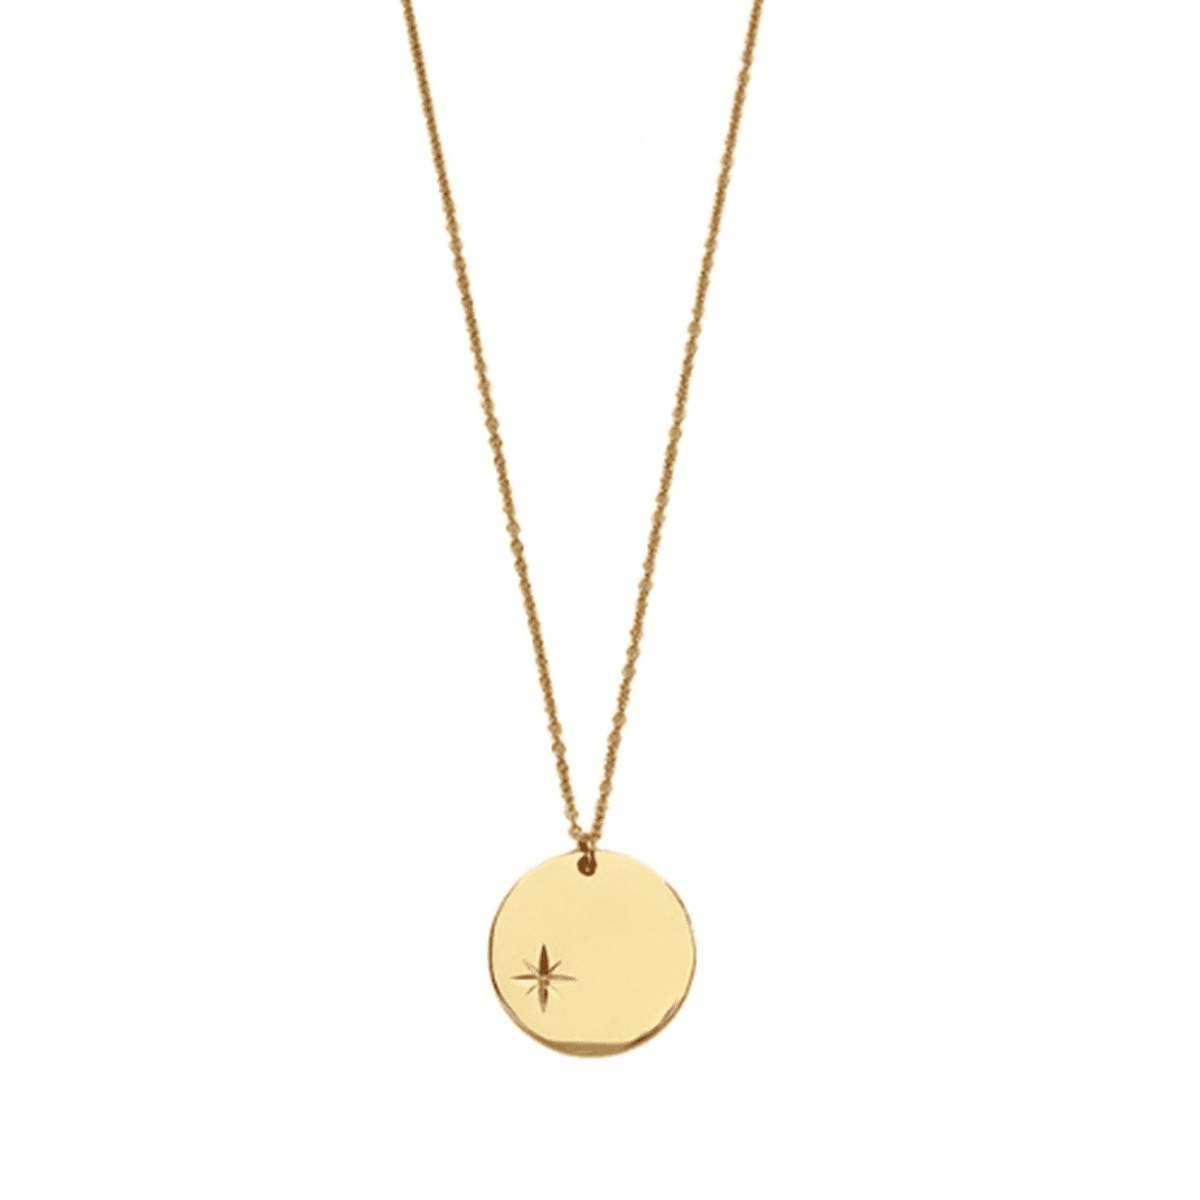 18k Gold-Plated Pendant With Big Polar Star Medal - Tanzire Store